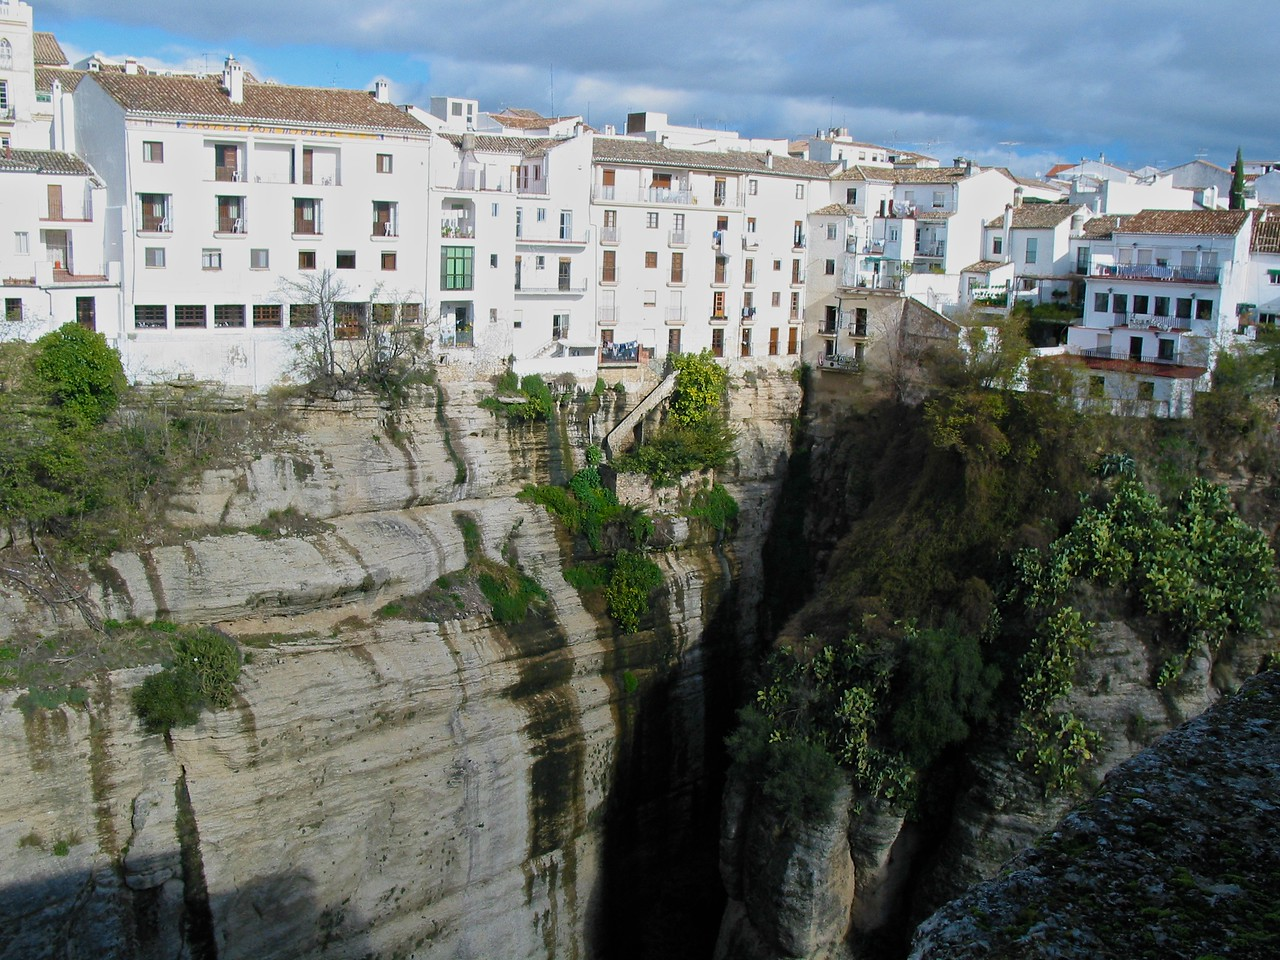 Ronda was first settled by the early Celts, but its subsequent Roman and then Moorish rulers are reflected most prominently in its architecture. The forces of Catholic Spain took control of the town in 1485, during the Reconquista.